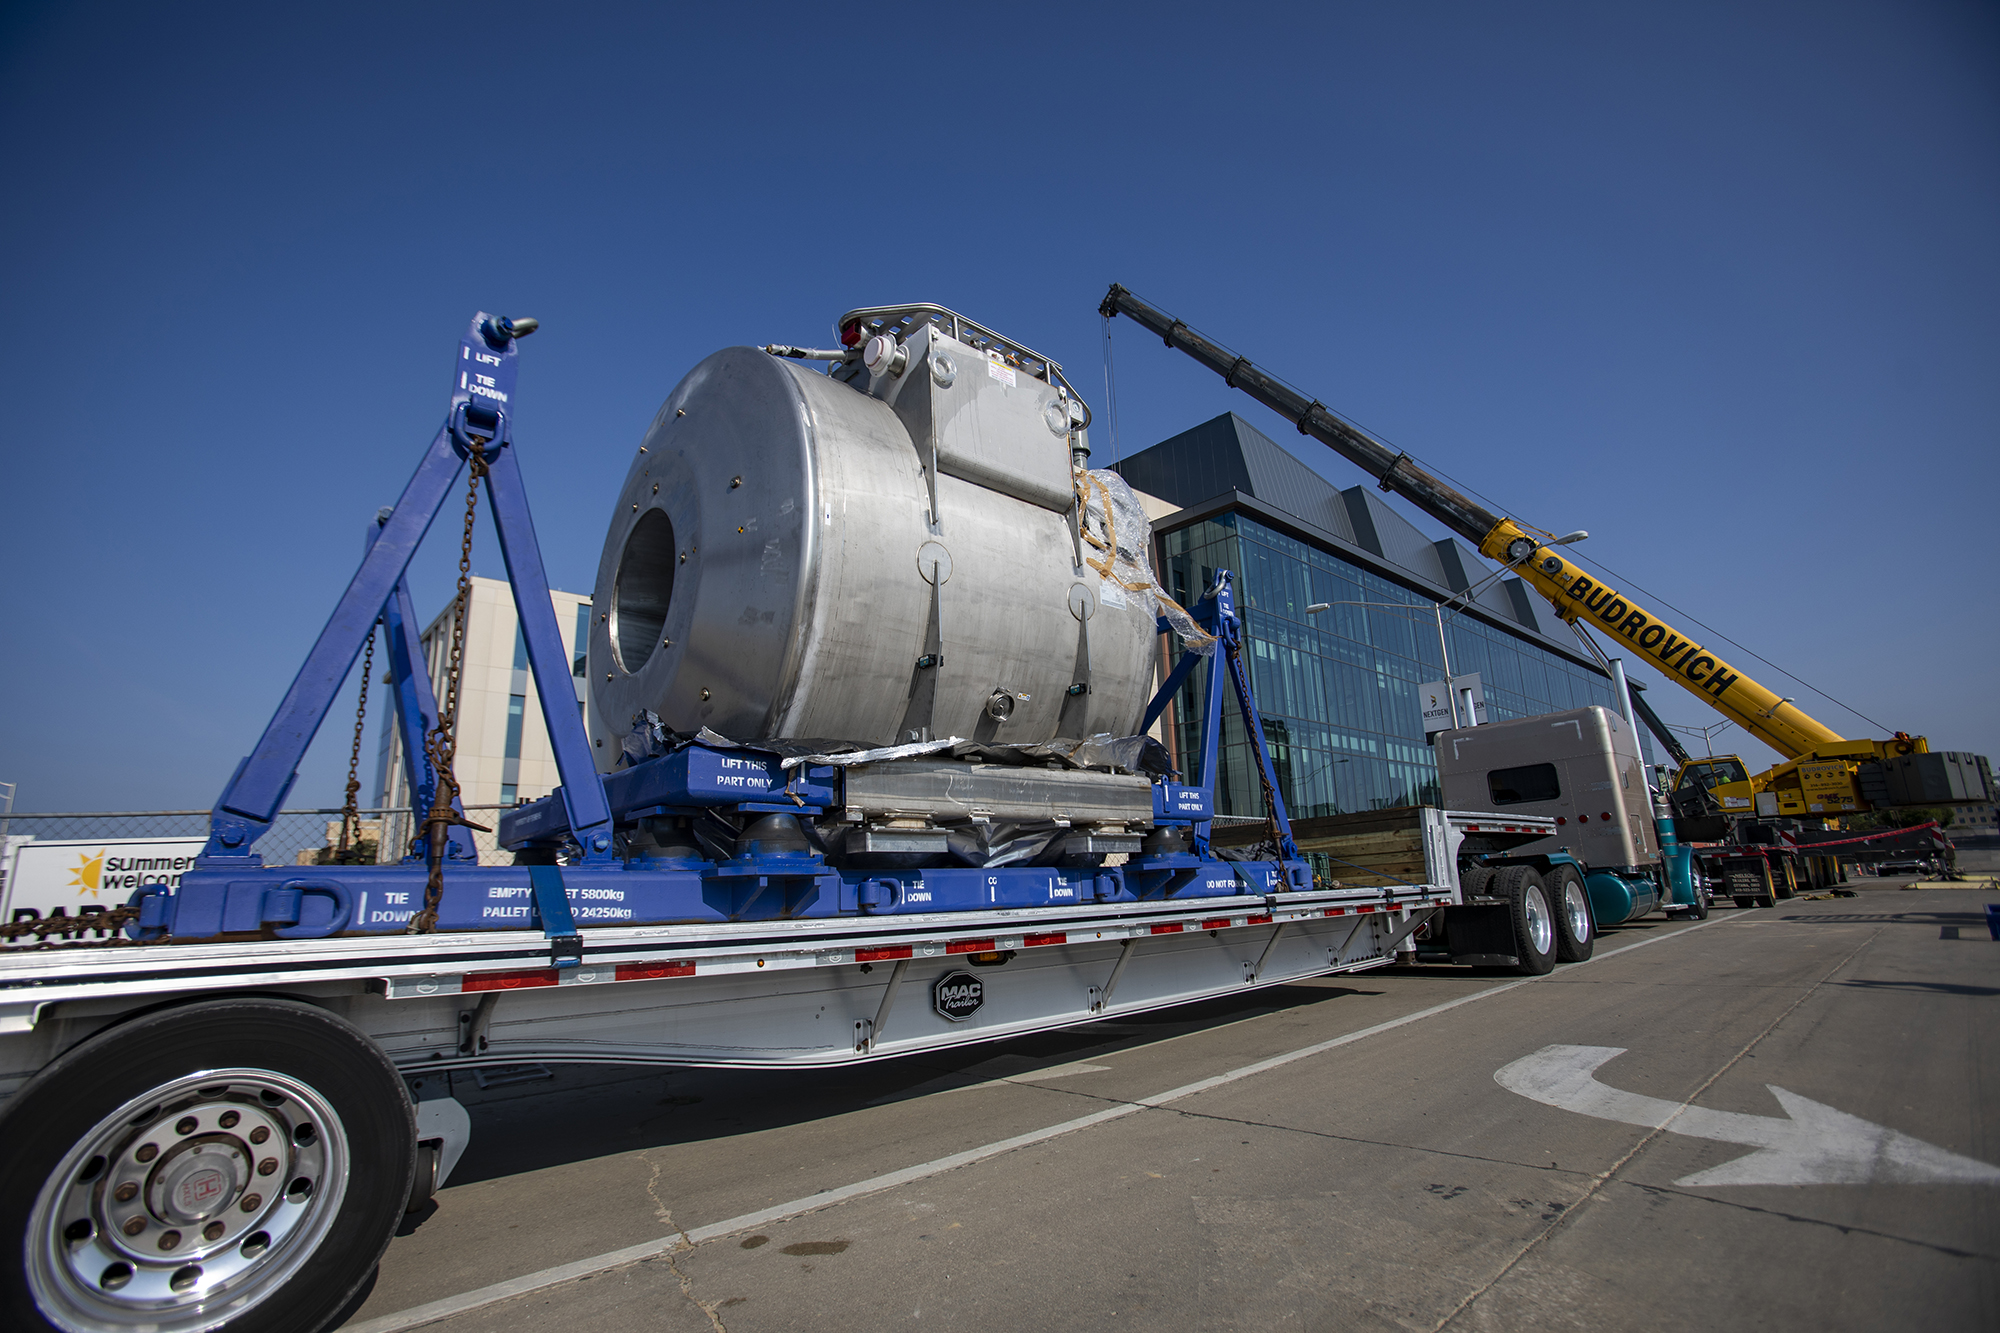 7T MRI arrives on the back of a truck